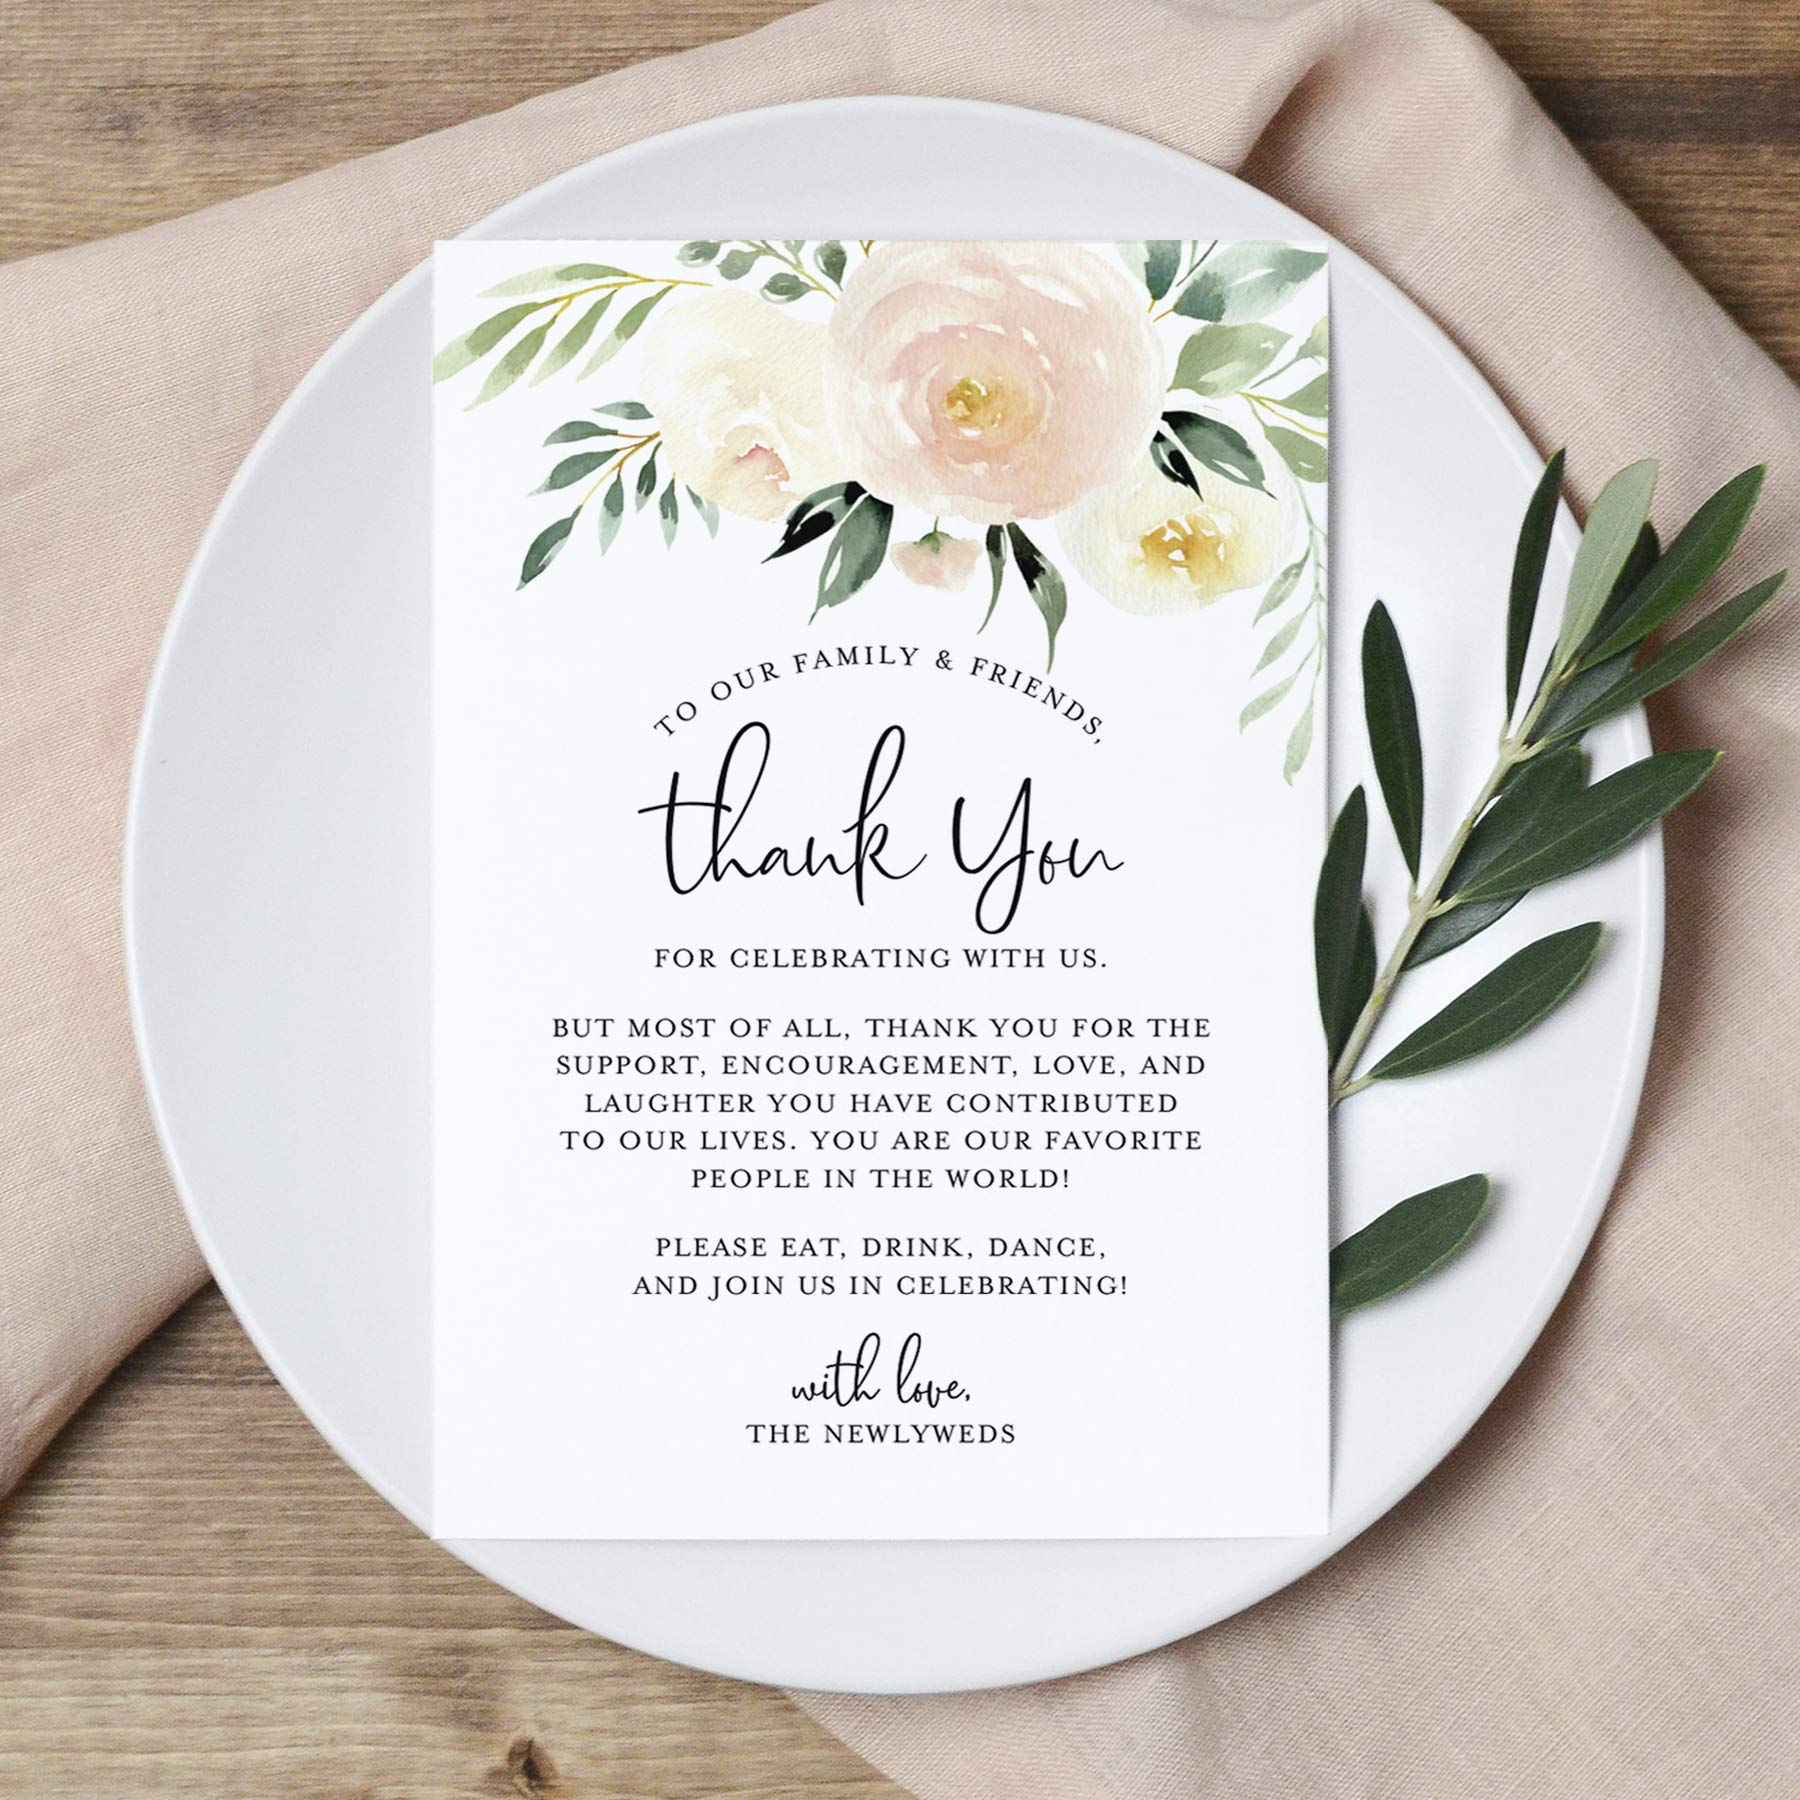 Blush Floral Wedding Thank You Place Setting Cards, 4x6 Print to add to your Table Centerpieces and Wedding Decorations -Pack of 50